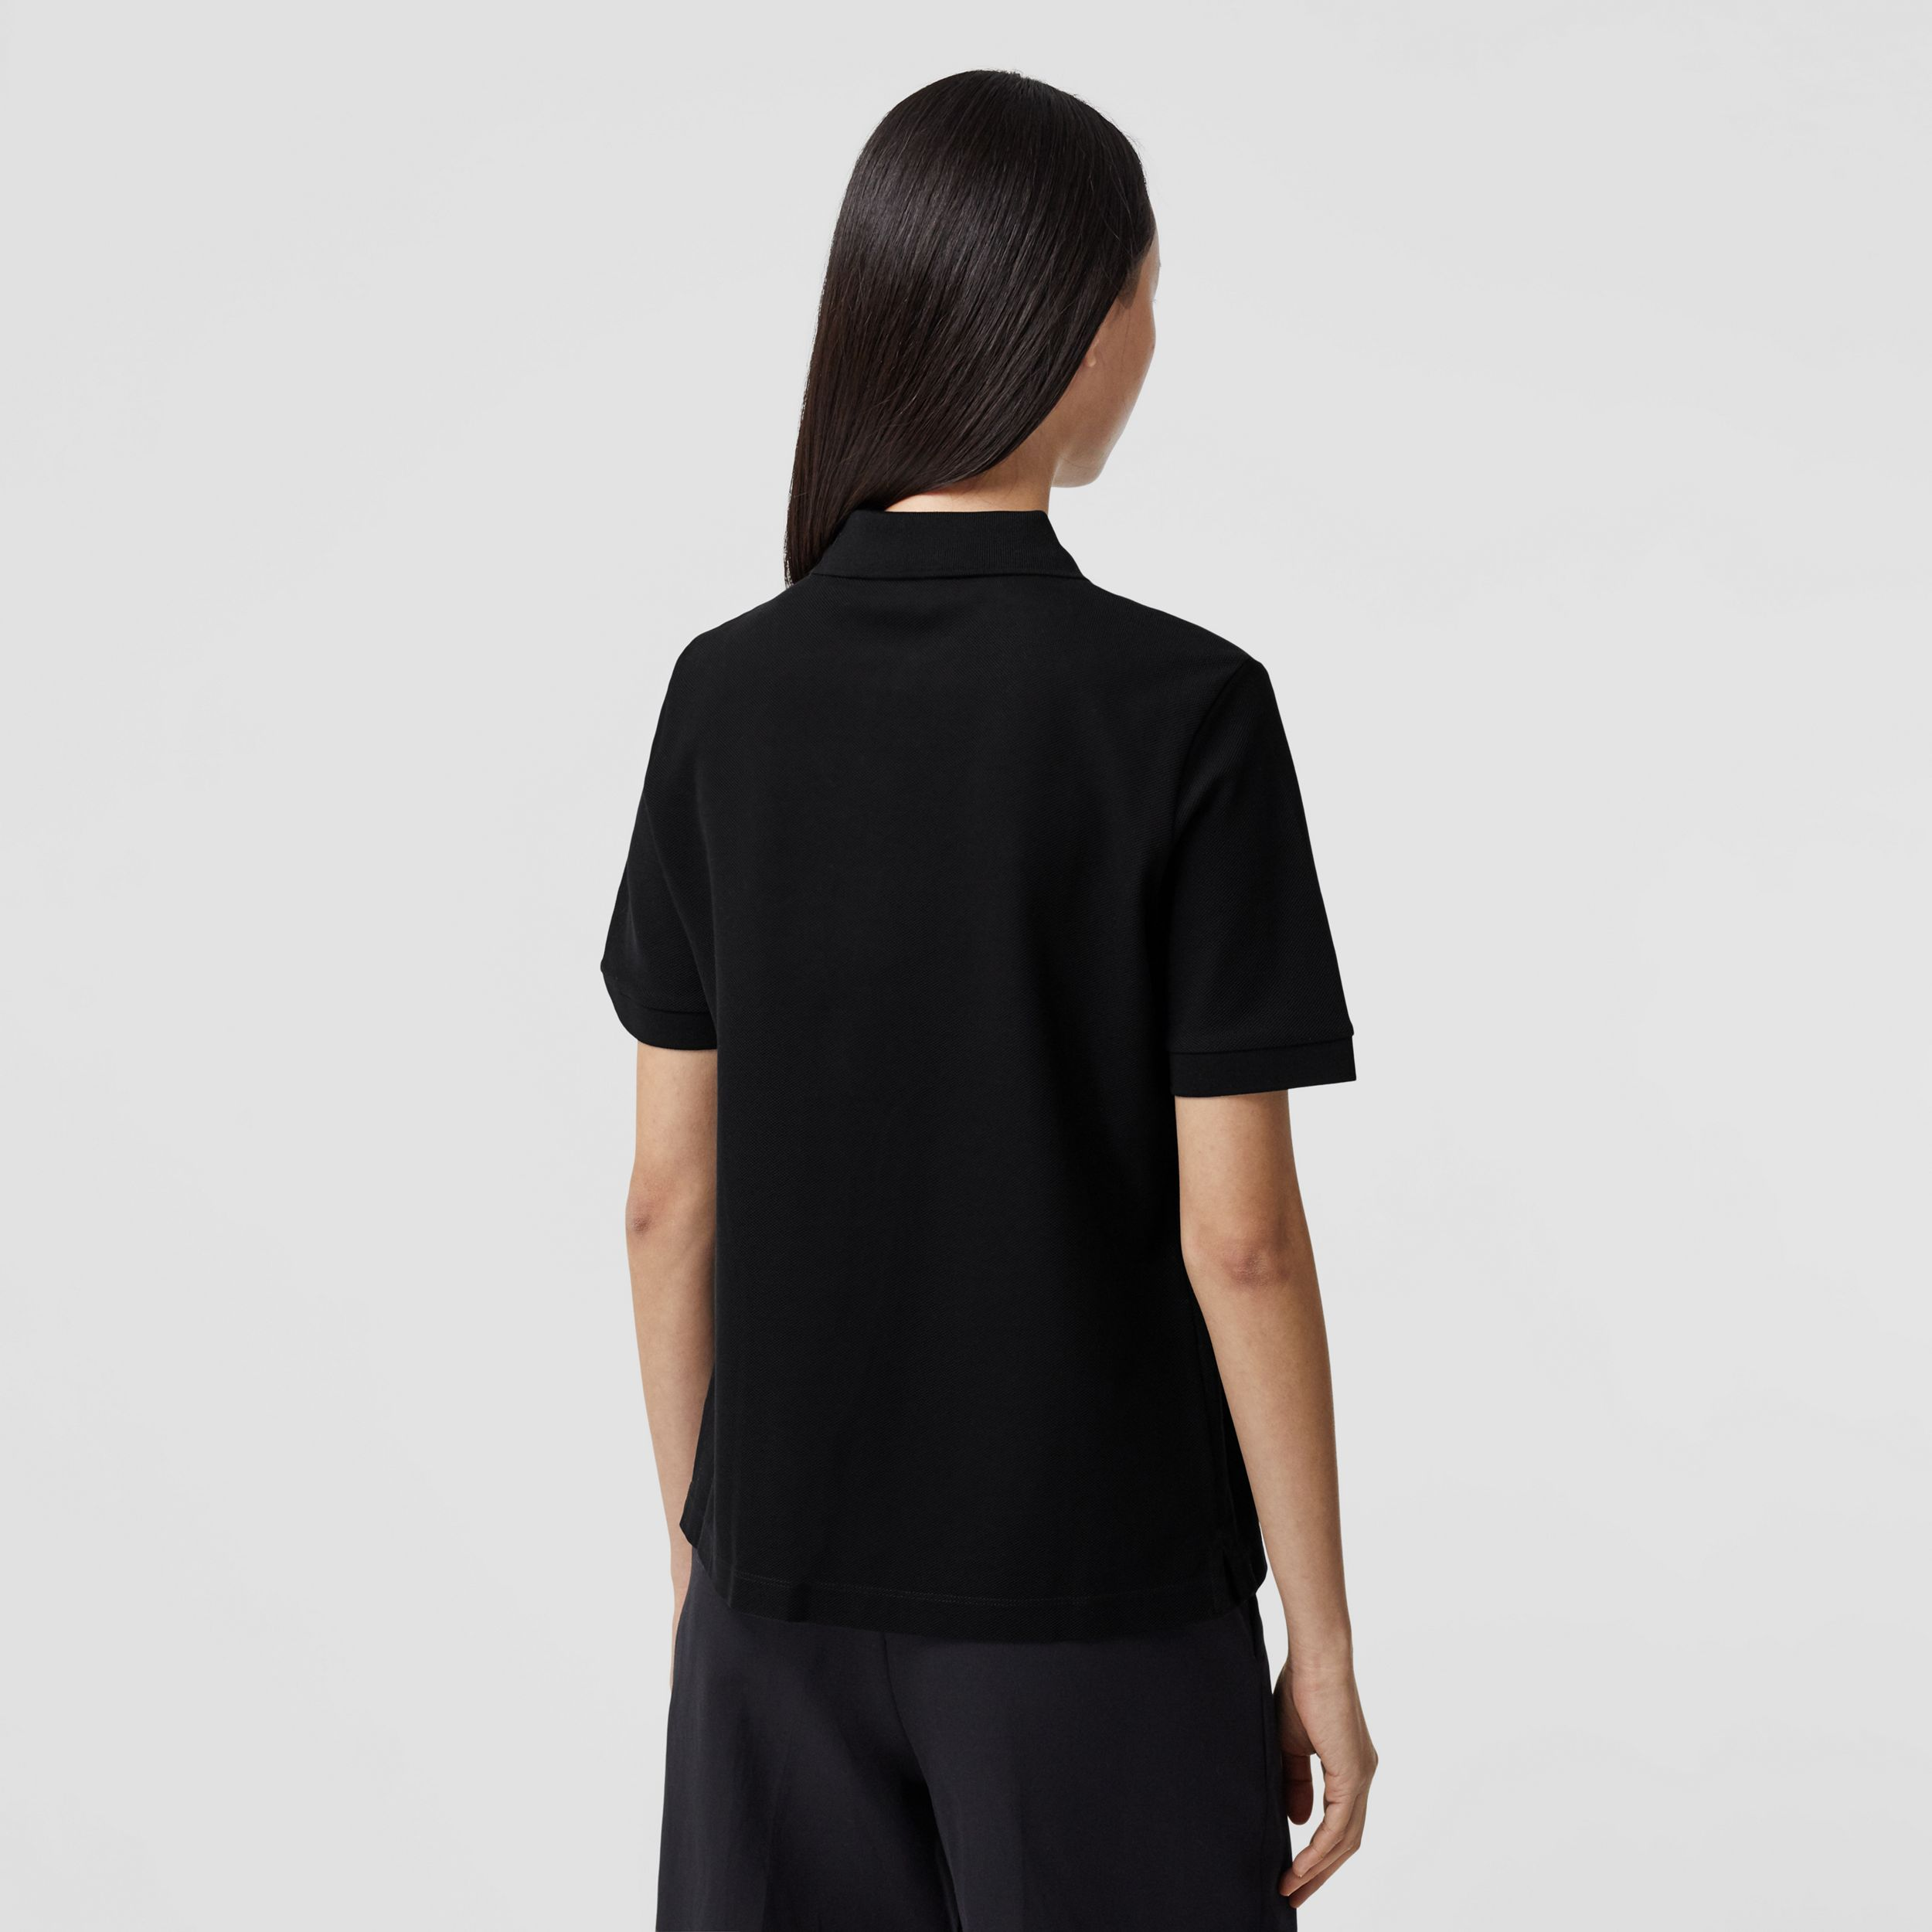 Monogram Motif Cotton Piqué Polo Shirt in Black - Women | Burberry Singapore - 3